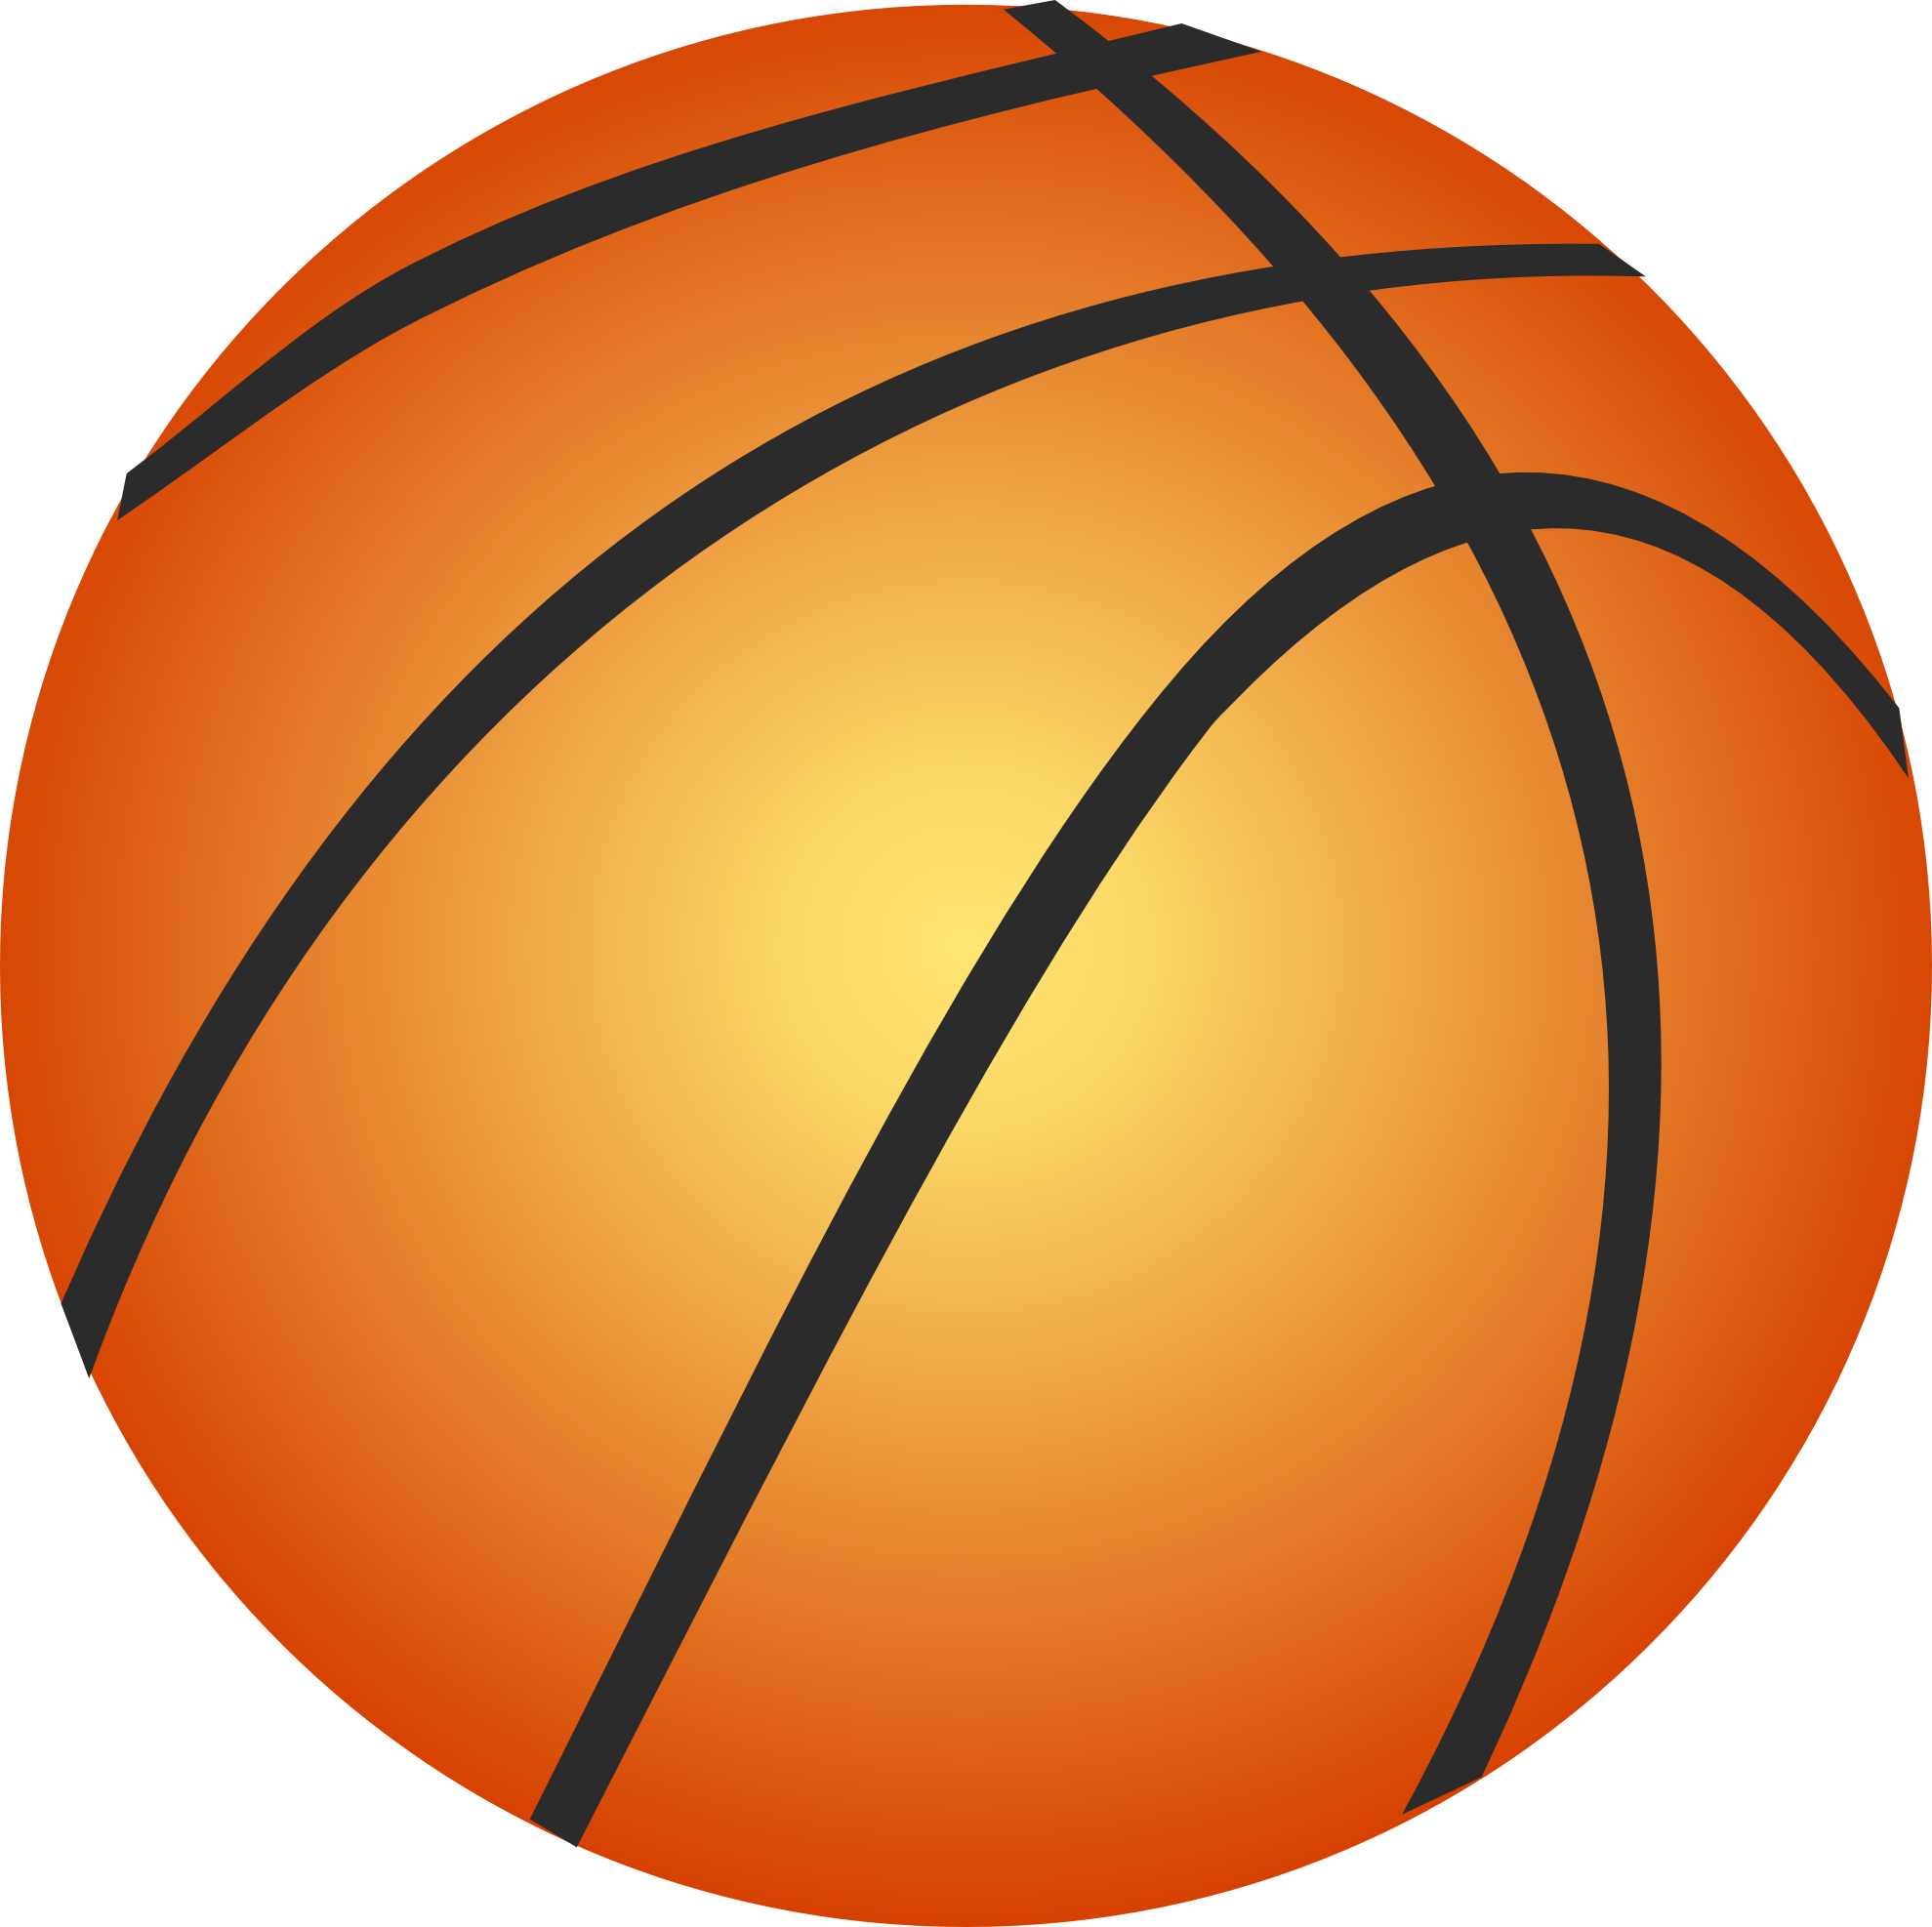 Basketball ball PNG images, free download - Basketball HD PNG